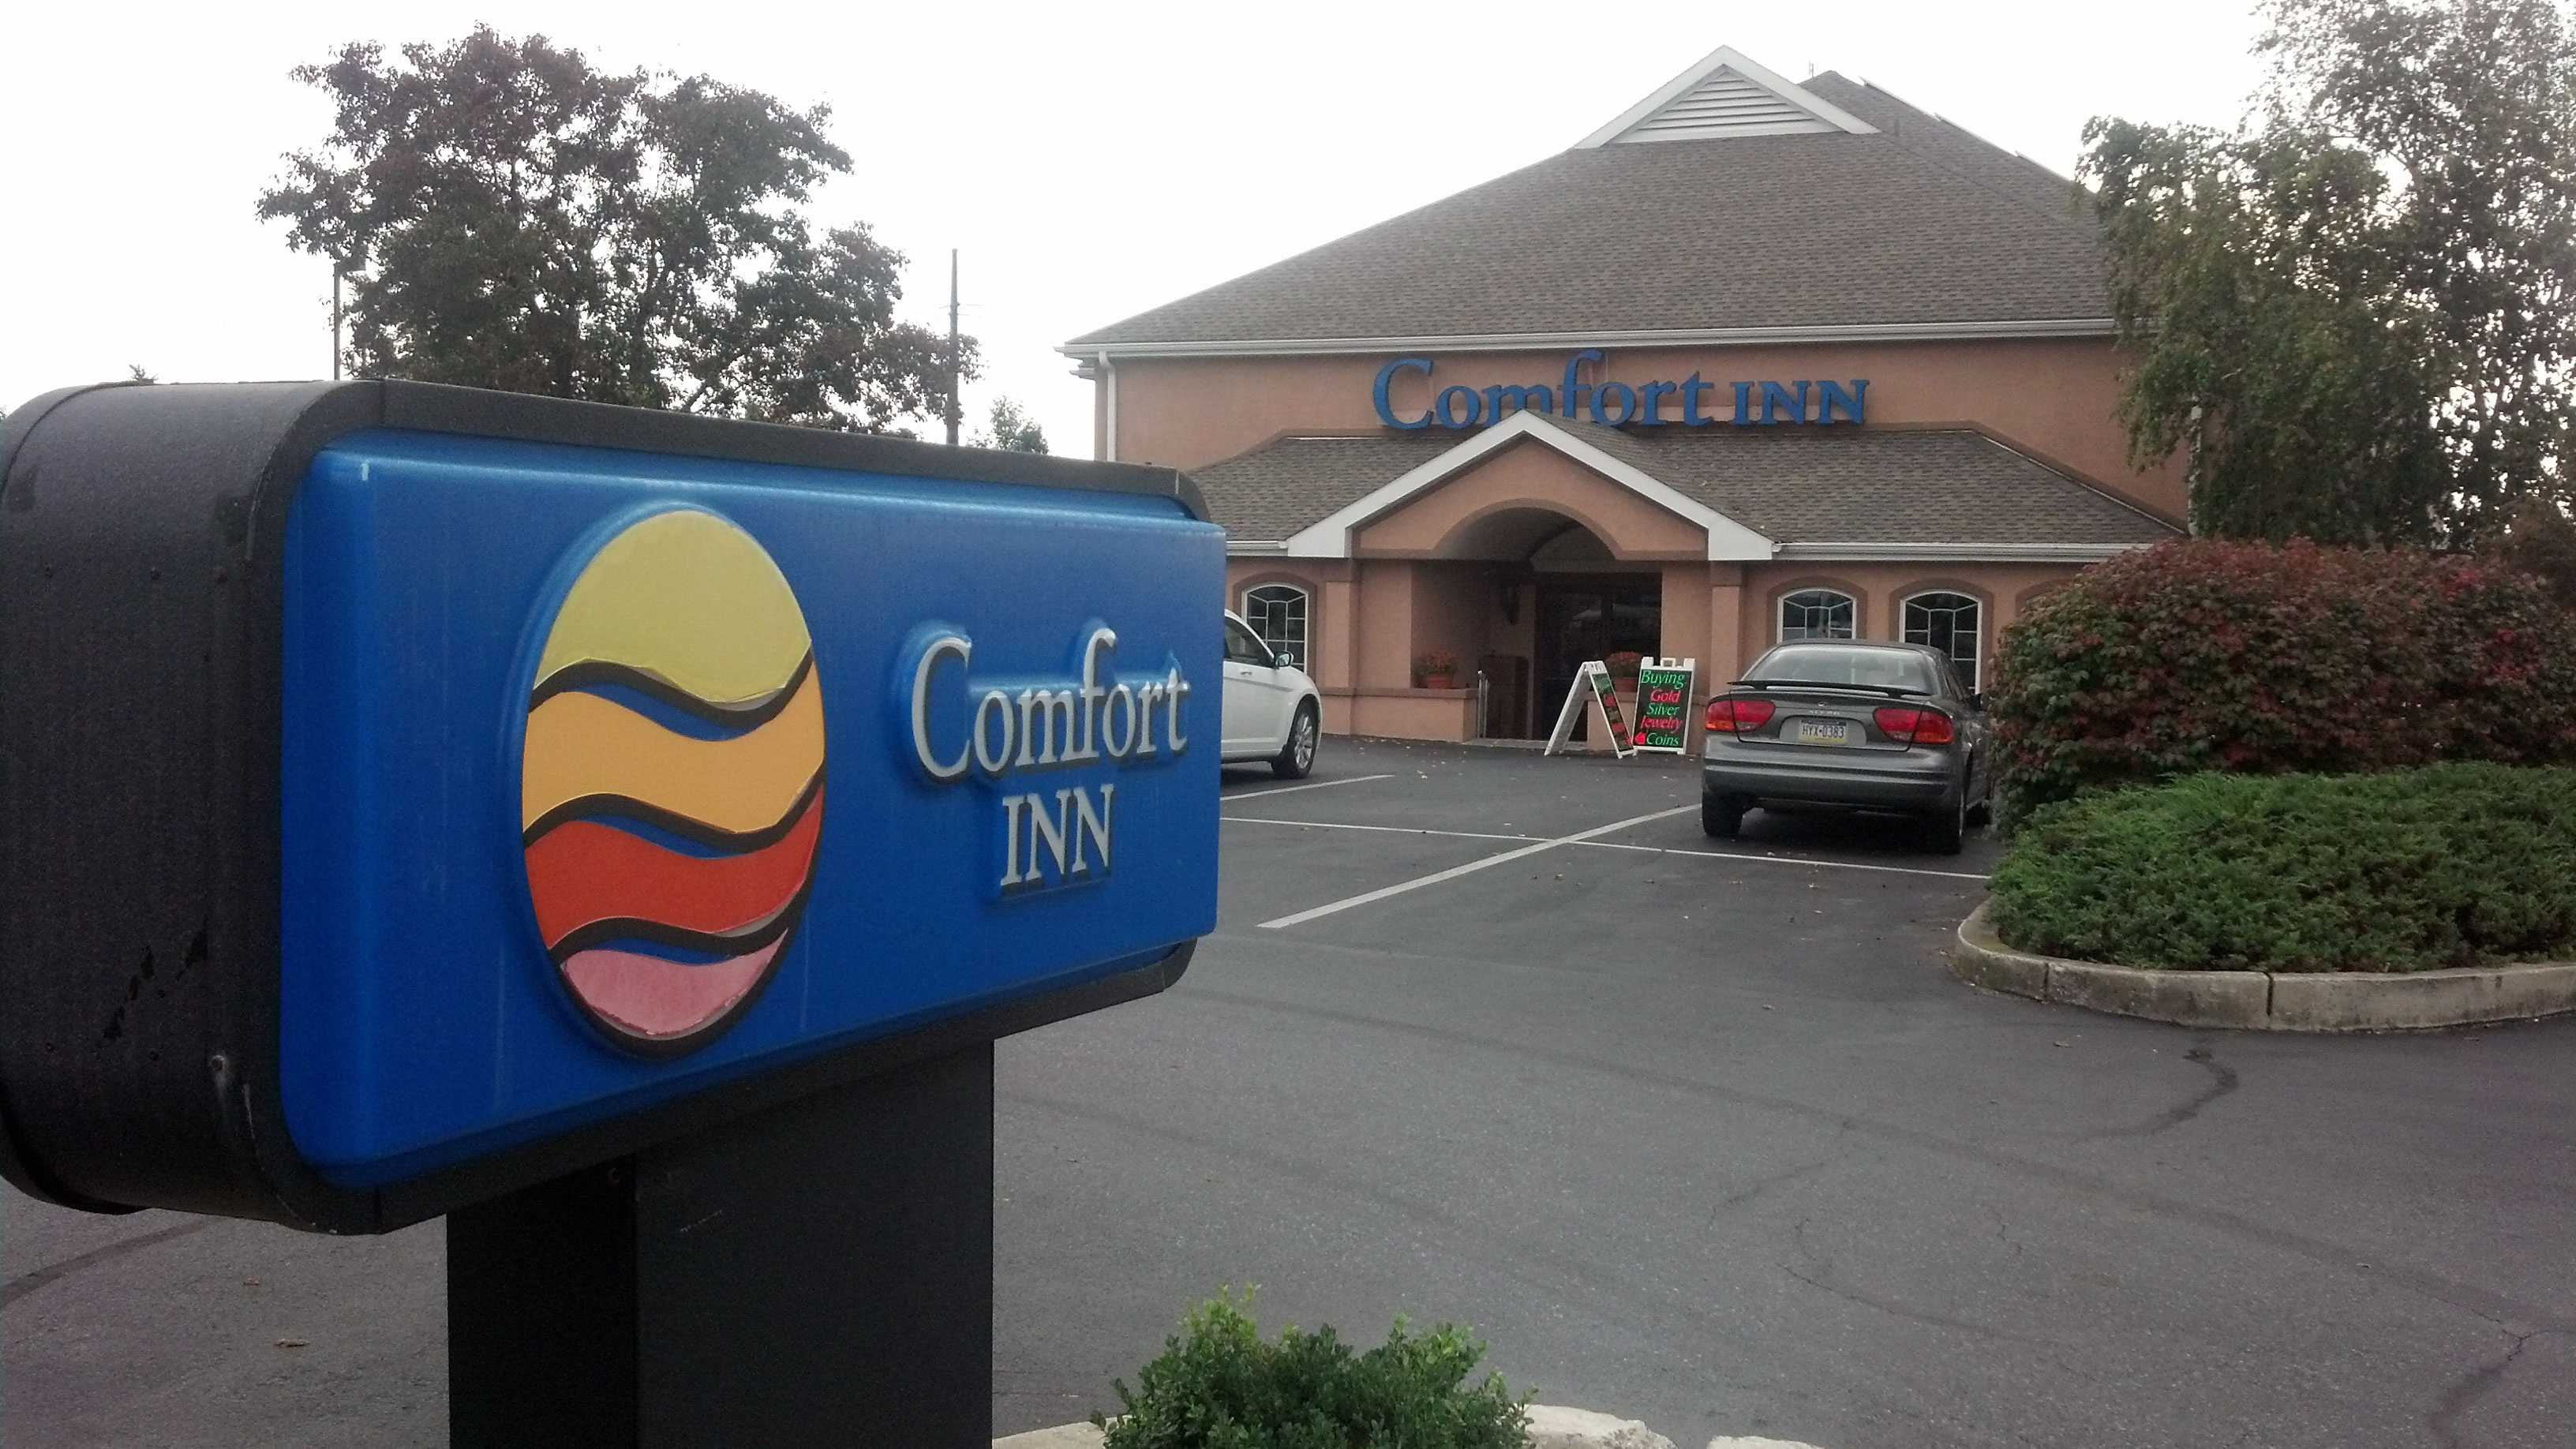 Guests at this Comfort Inn were targeted by a phone scam.